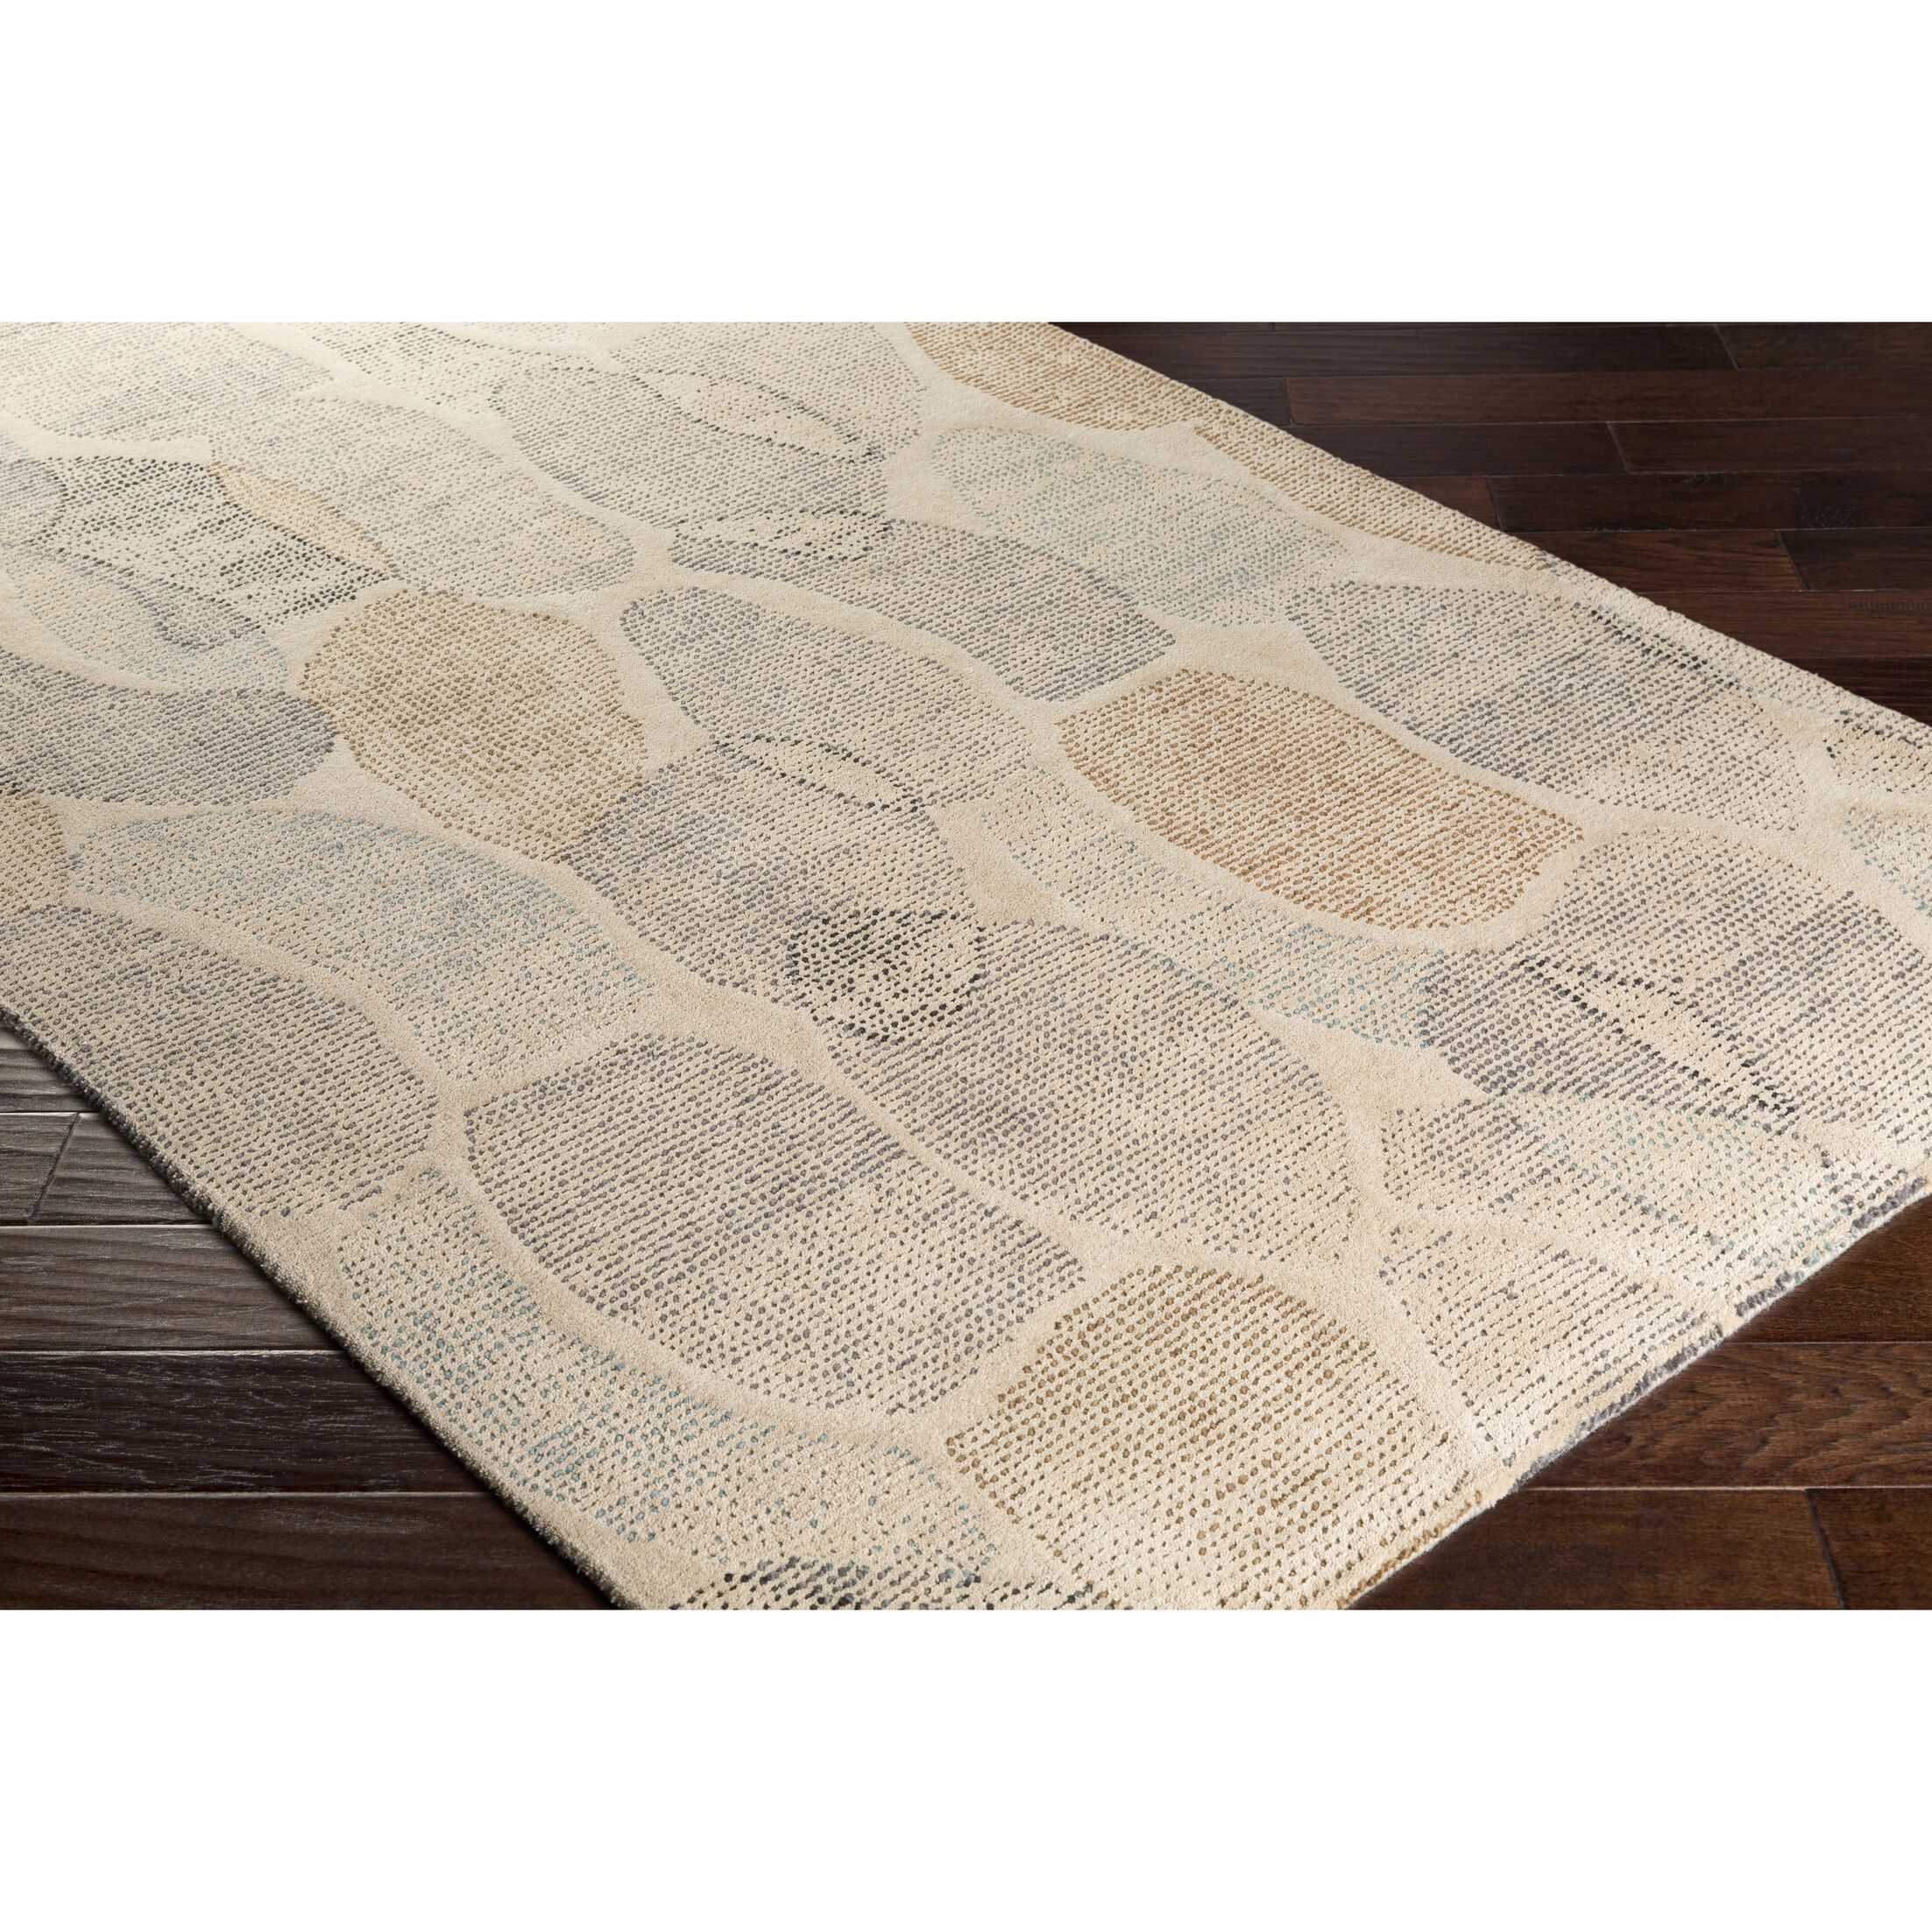 Digby Hand-Tufted Neutral/Gray Area Rug Rug Size: Rectangle 4' x 6'